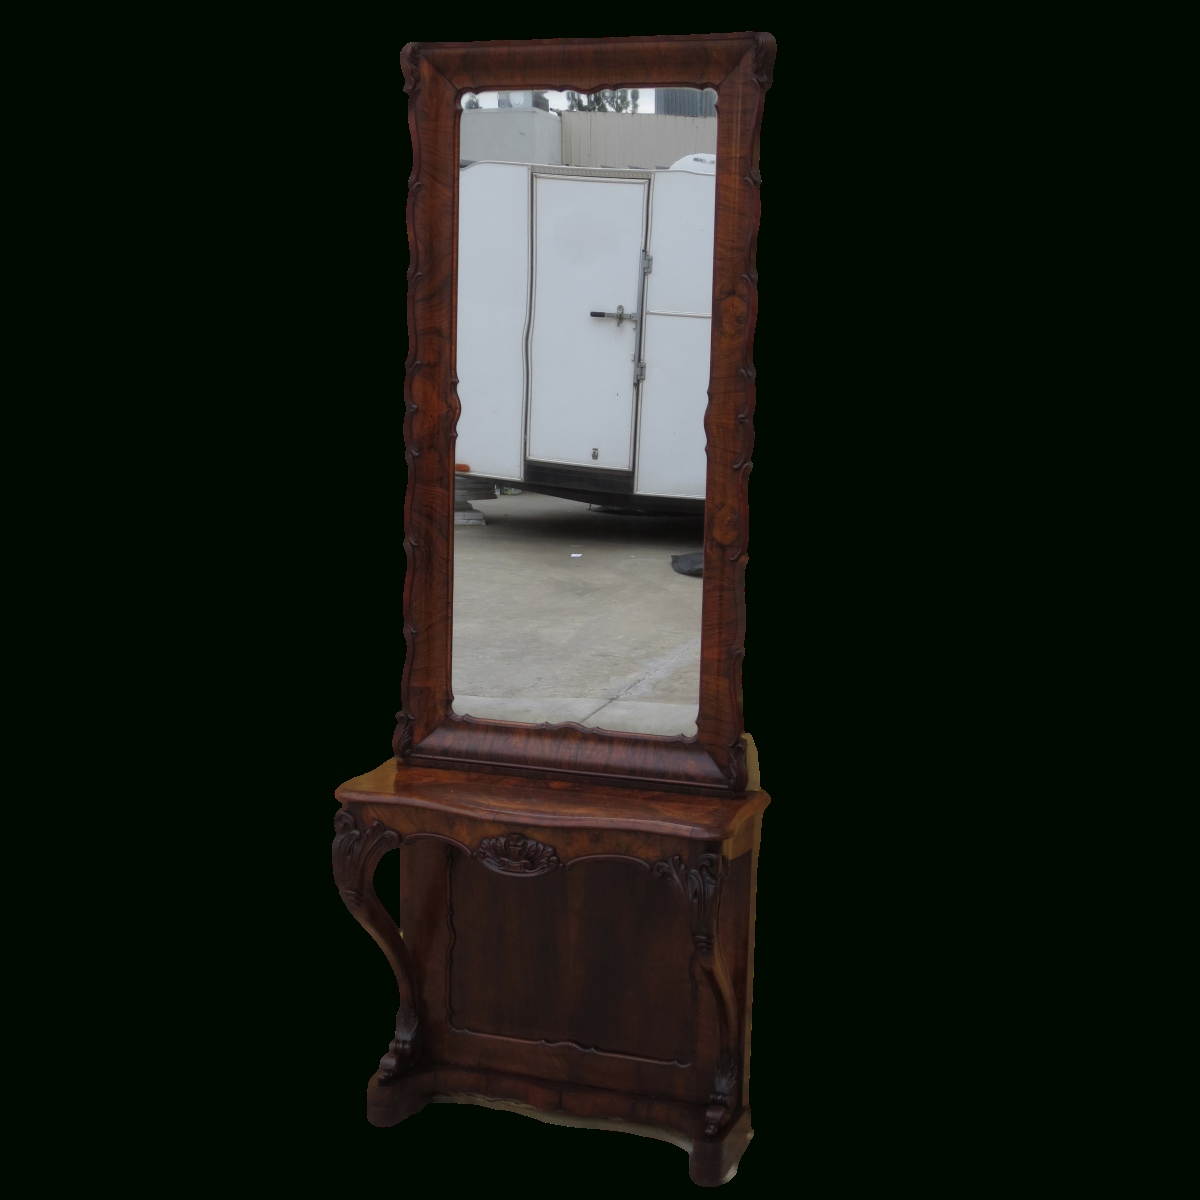 Antique Mirrors, Vintage Mirrors, Antique Wall Mirrors, And French In Antique Mirrors Cheap (View 19 of 20)